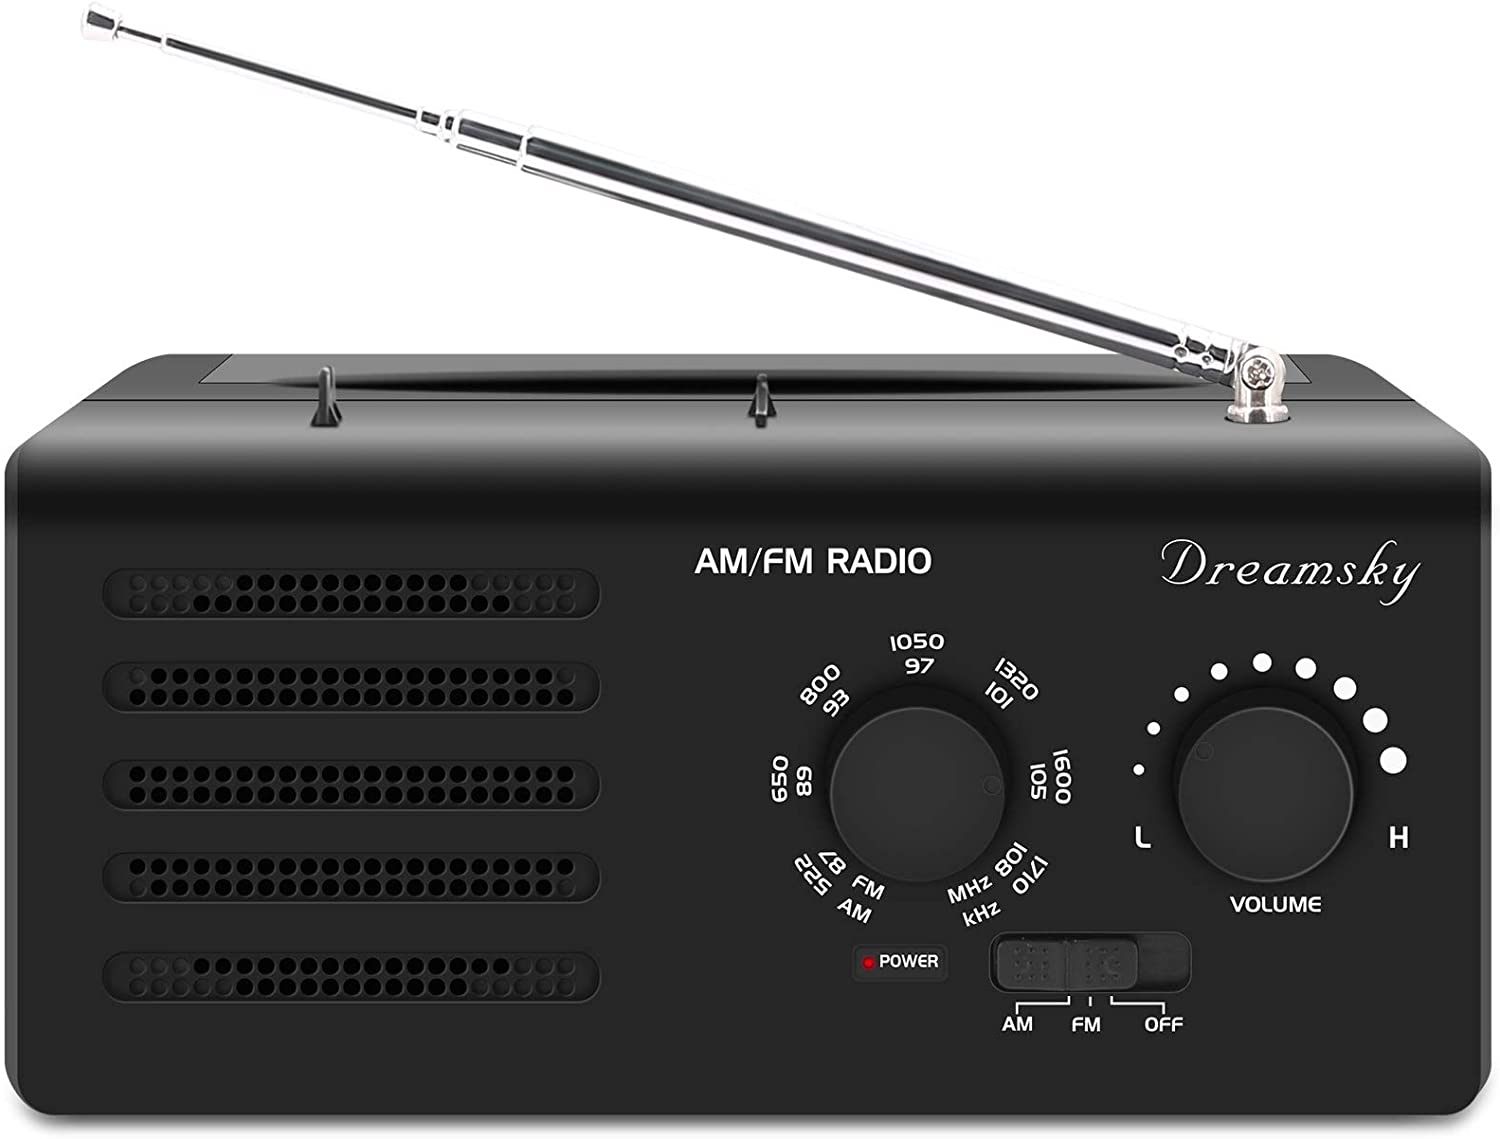 DreamSky Portable Radio AM FM - Battery Operated Radio (2 D Size) Outlet Powered Radio for Home/Outdoor/Emergency, Transistor Radio with Strong Reception Clear Loud Sound for Senior, Easy Tuning Knob